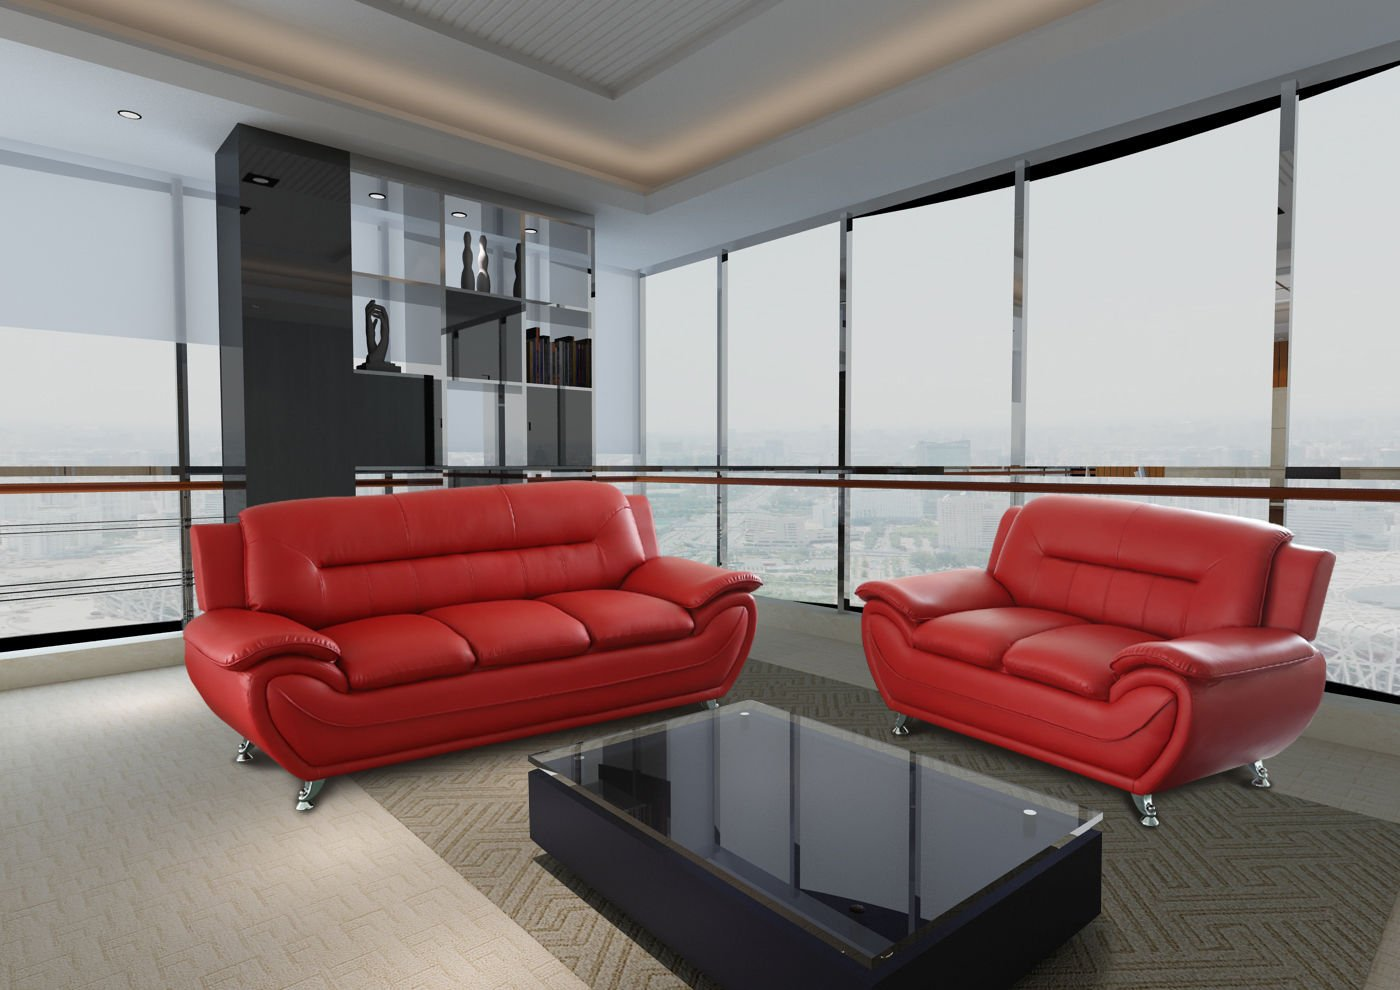 Gtu furniture contemporary bonded leather sofa loveseat set 2 piece sofa set red